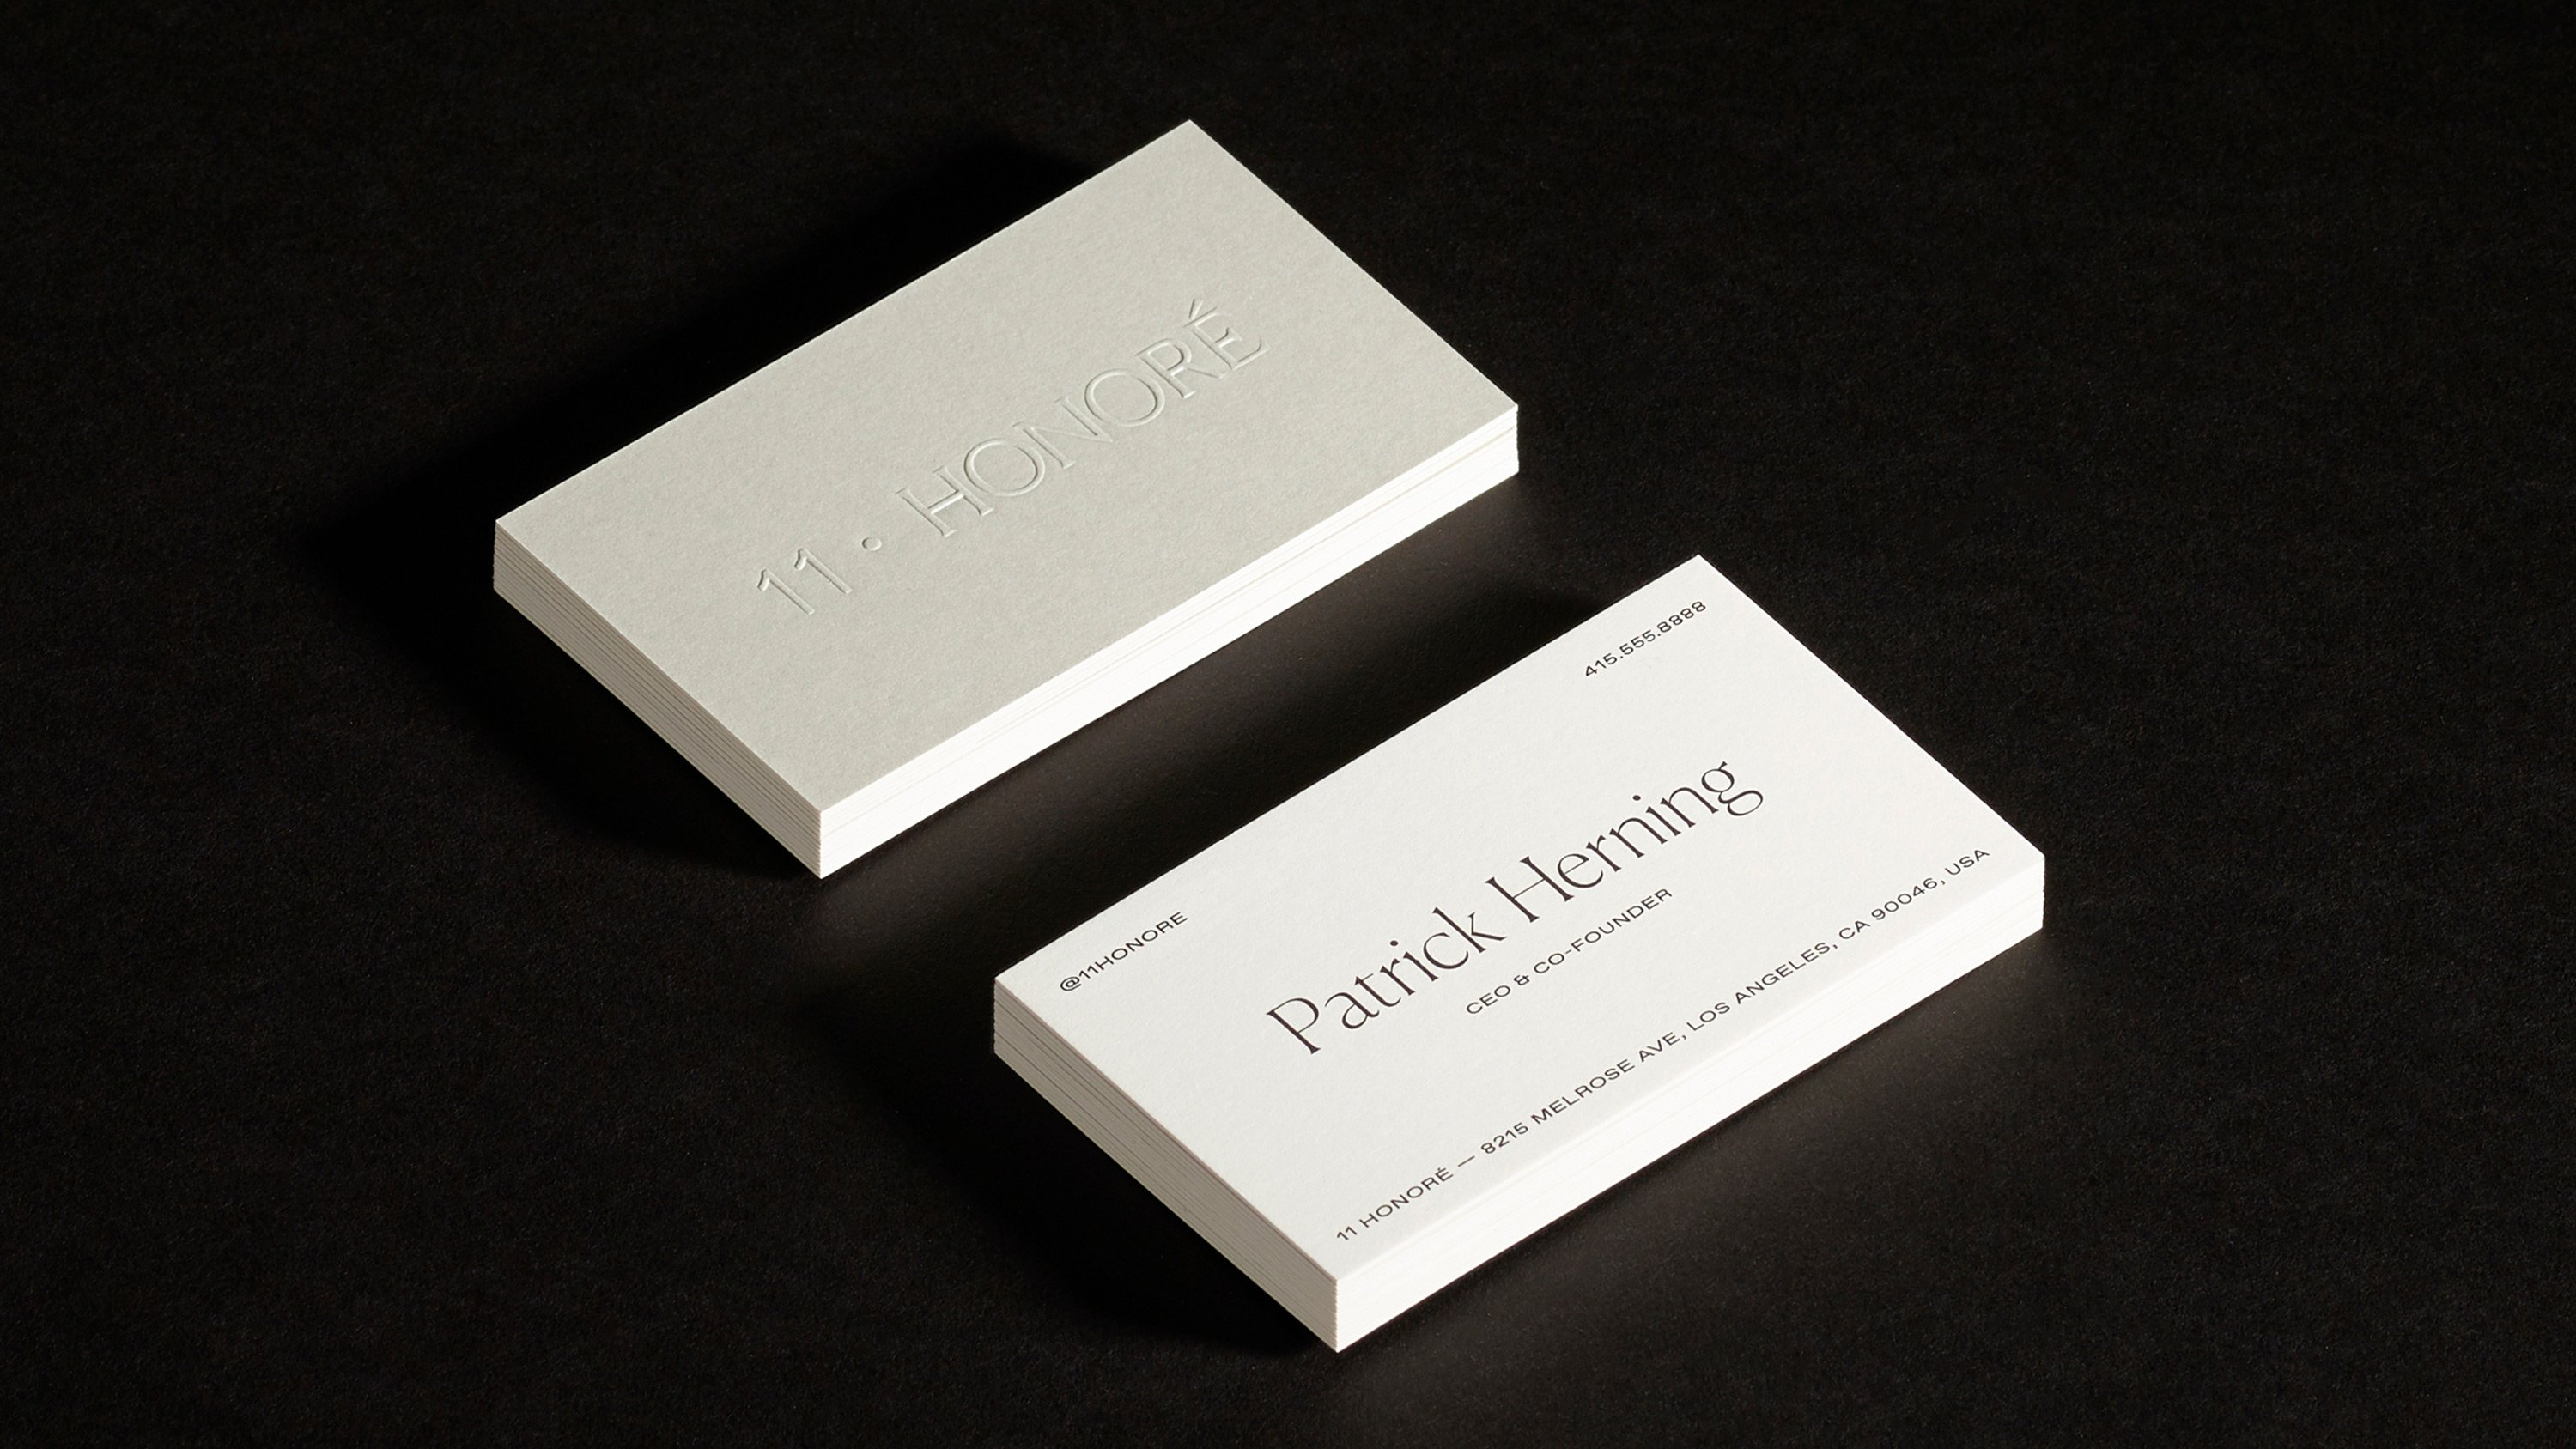 Close up of Patrick Herning custom embossed business card, print design and branding by RoAndCo